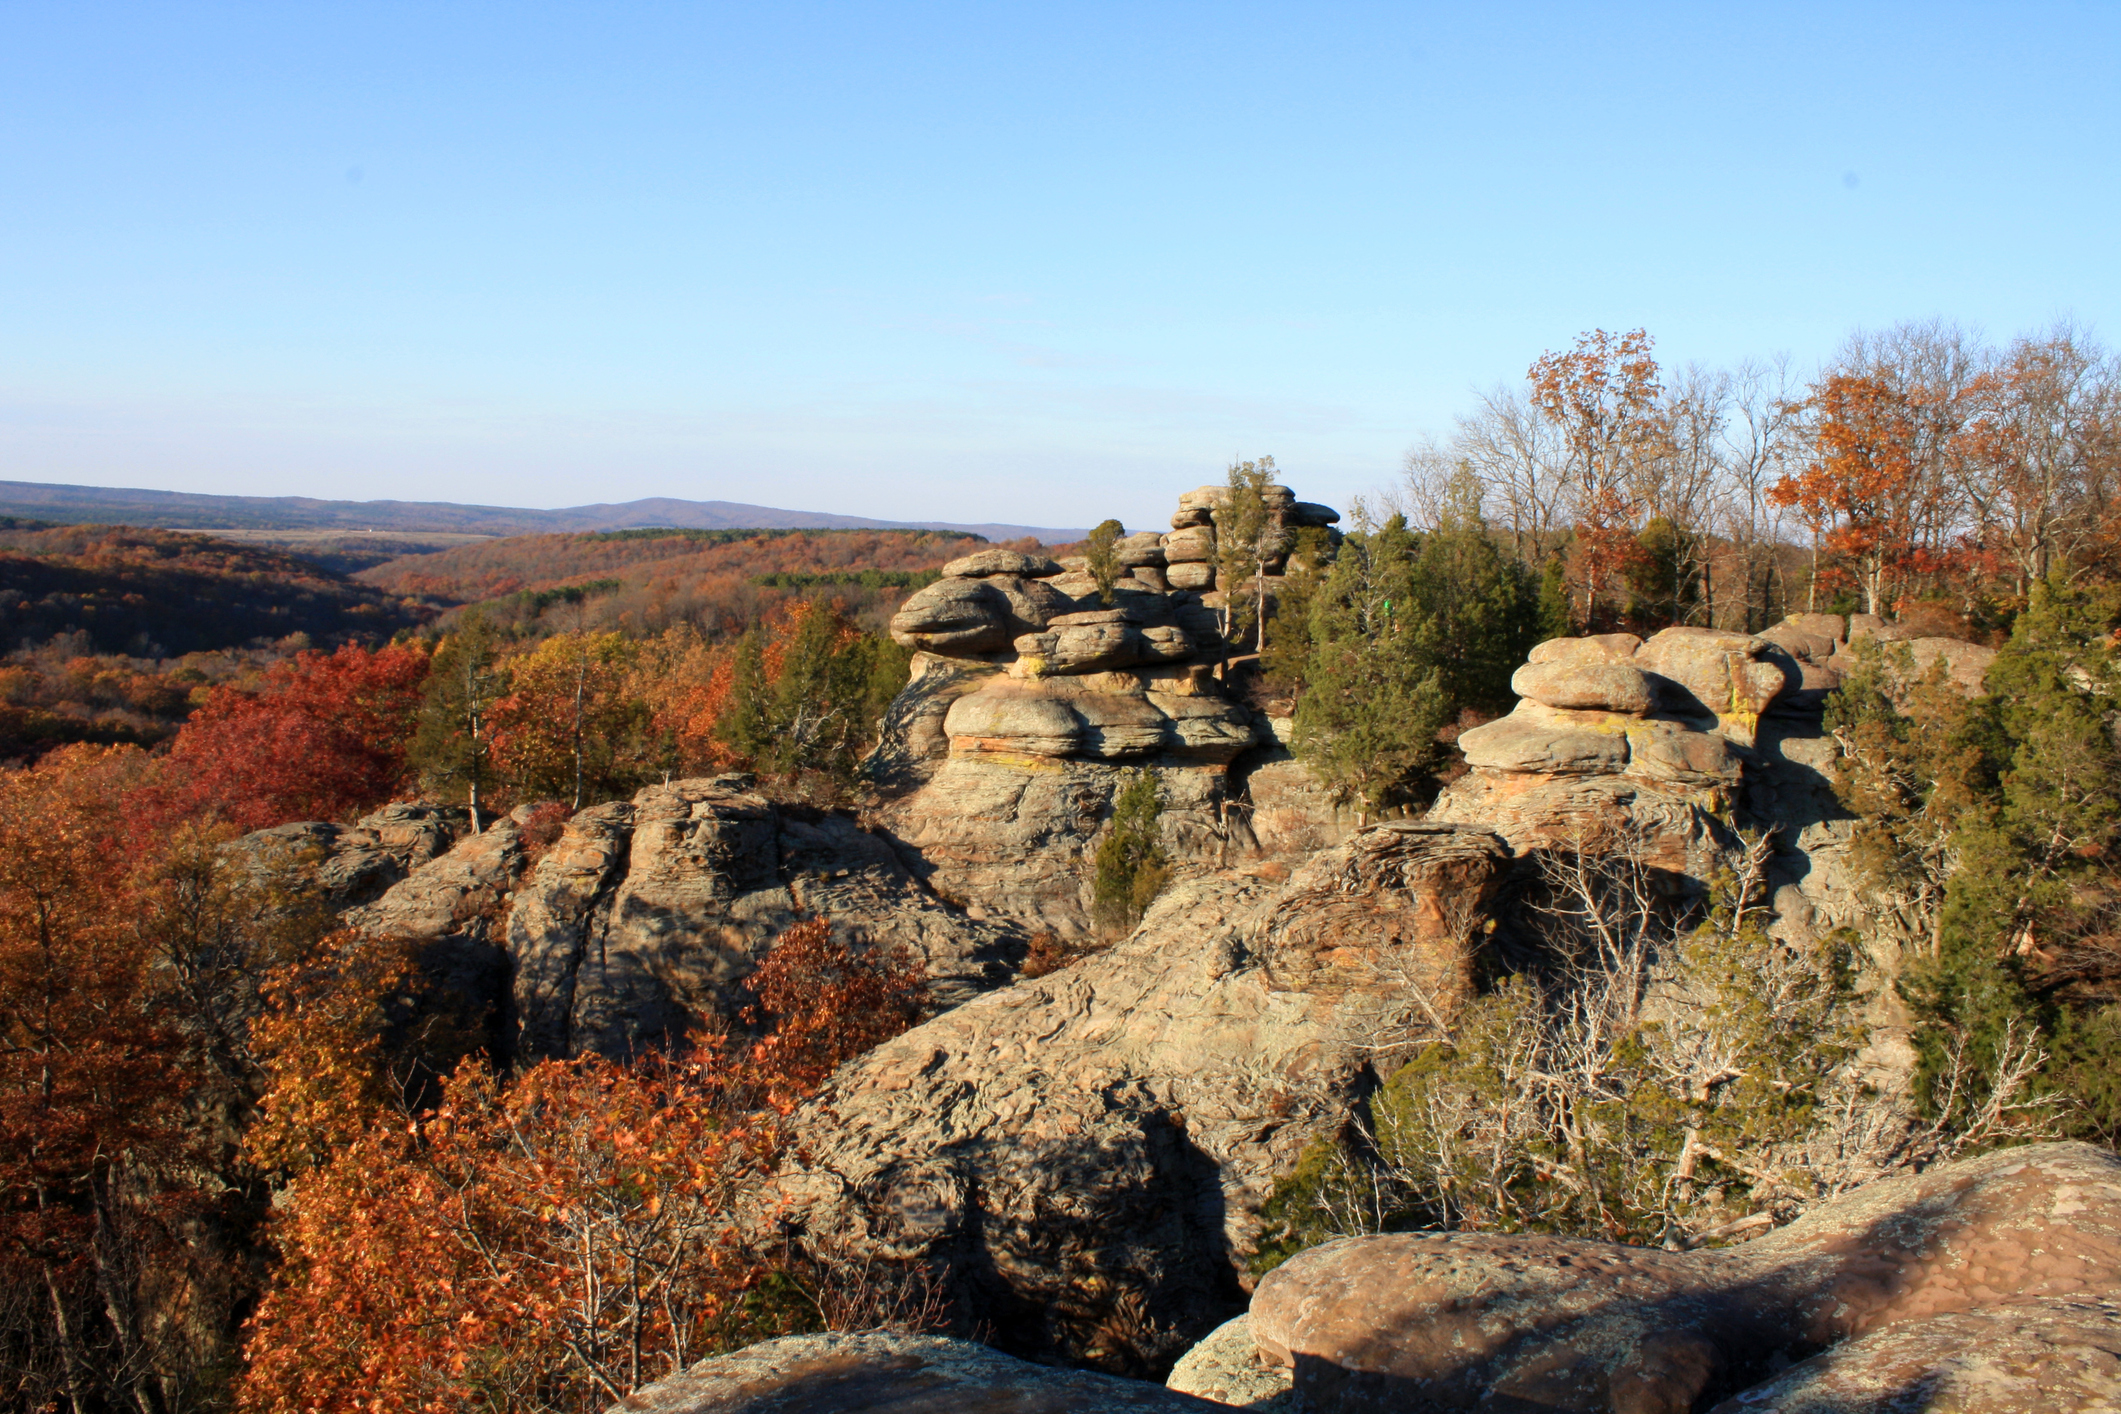 A unique rock formation at Garden of the Gods is surrounded by bright fall colors in Shawnee National Forest.